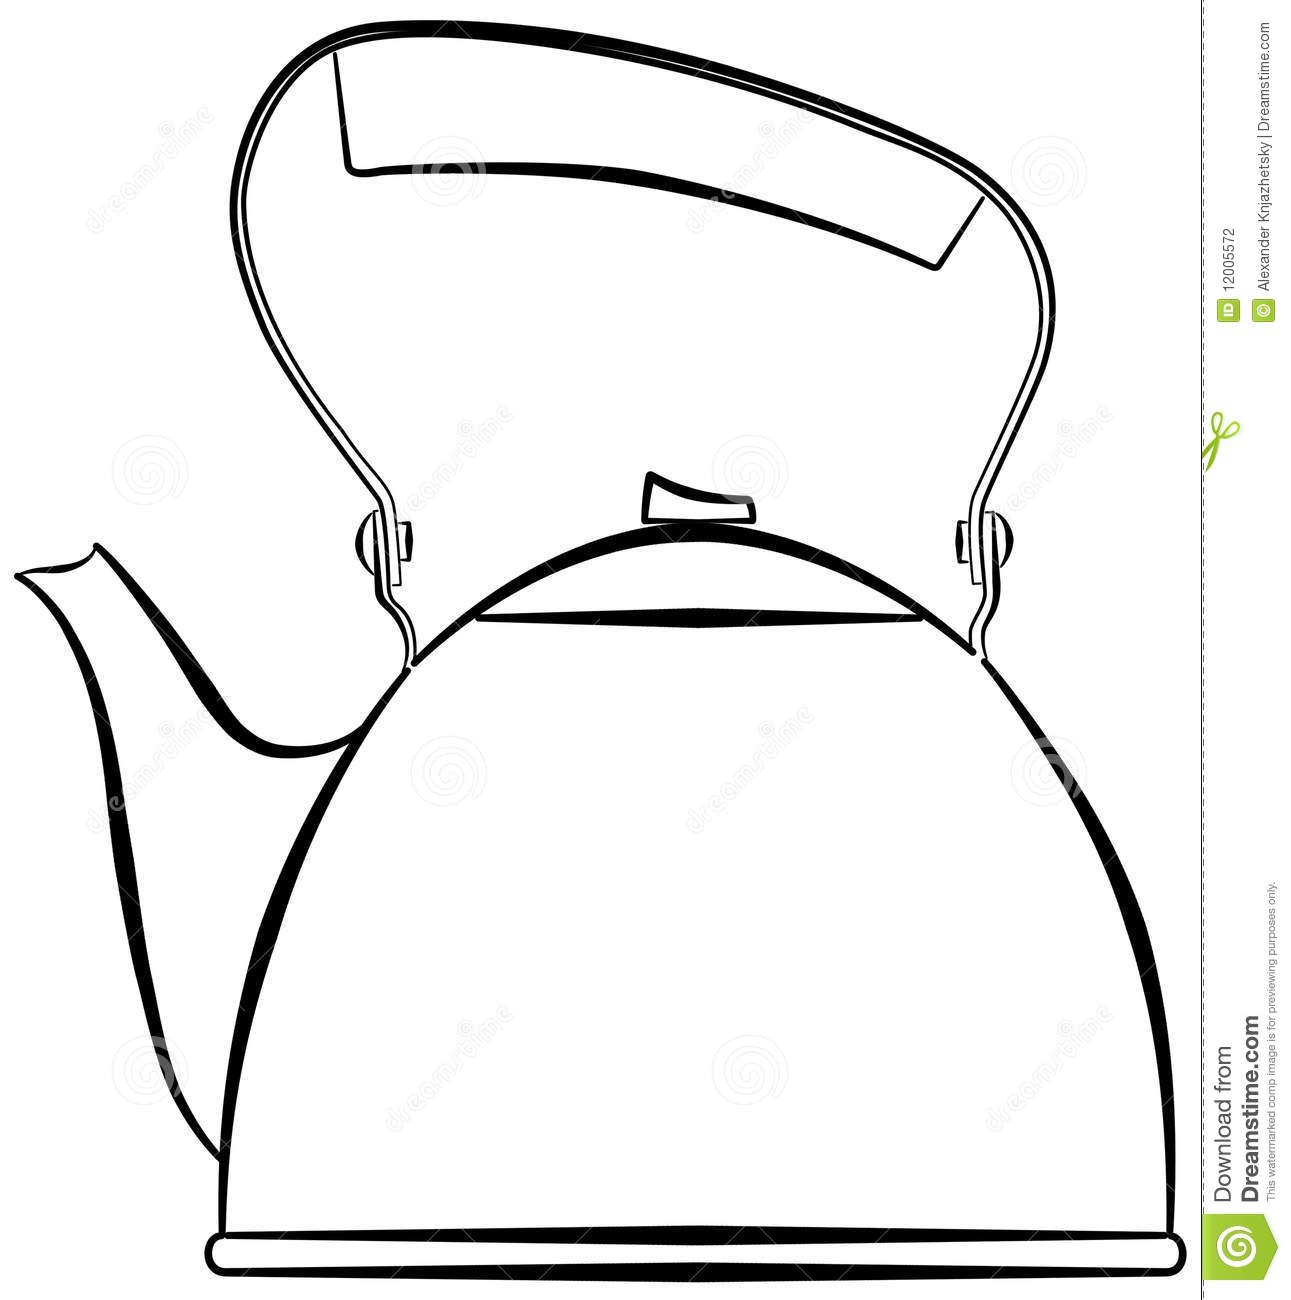 kettle stock illustration  illustration of teapot